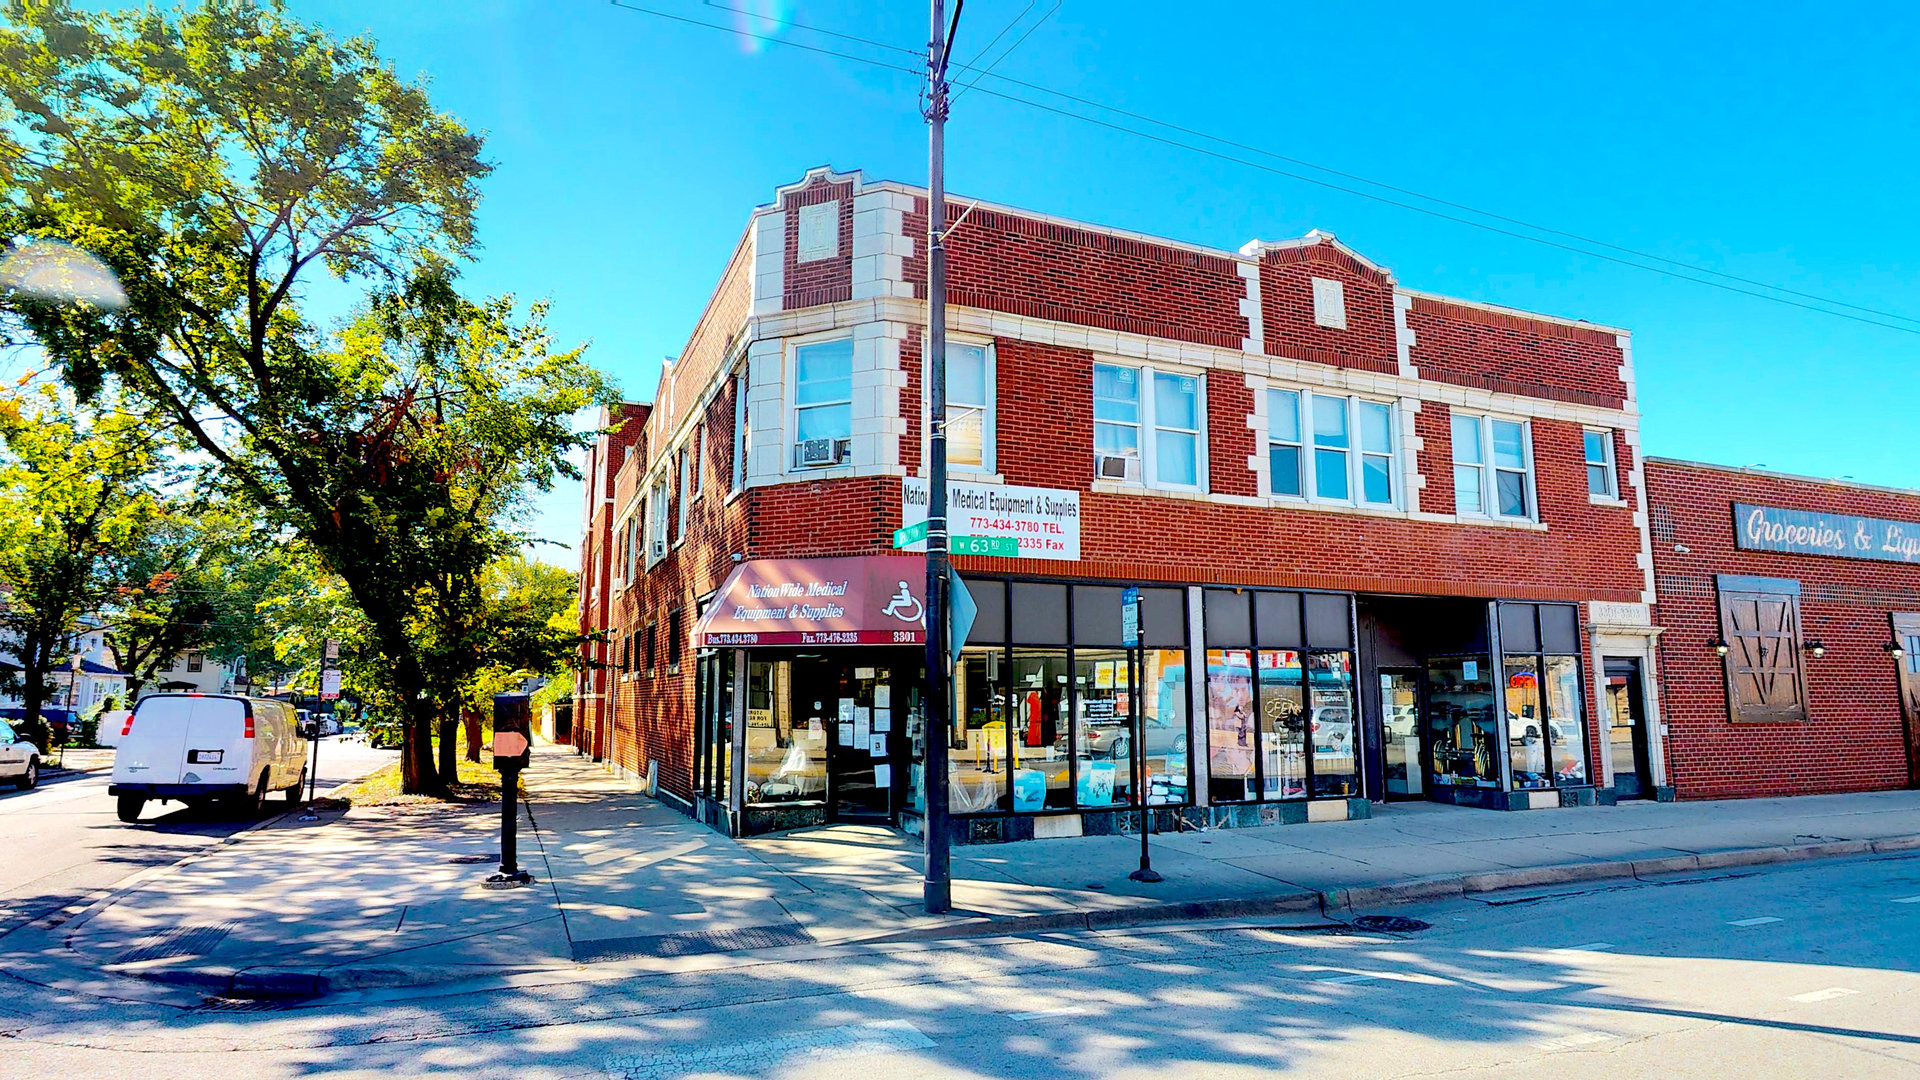 This magnificent 10 residential unit 4 commercial store front property is a rare opportunity. Separa